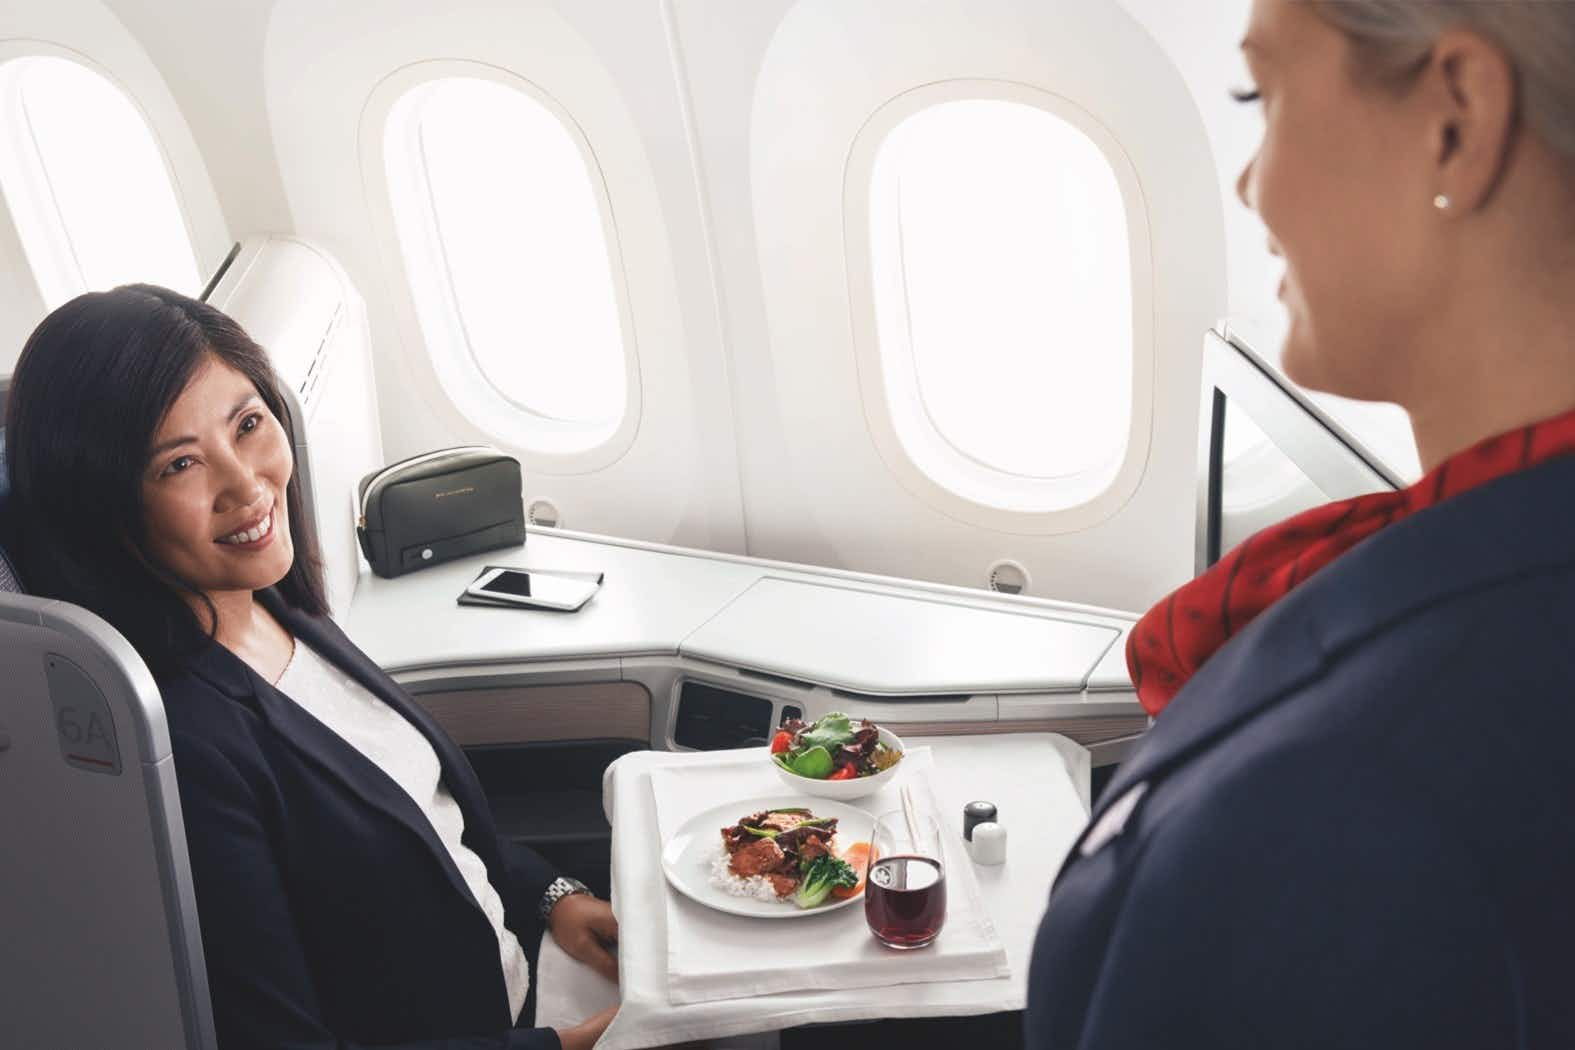 Air Canada is changing how its cabin crew addresses passengers © Air Canada